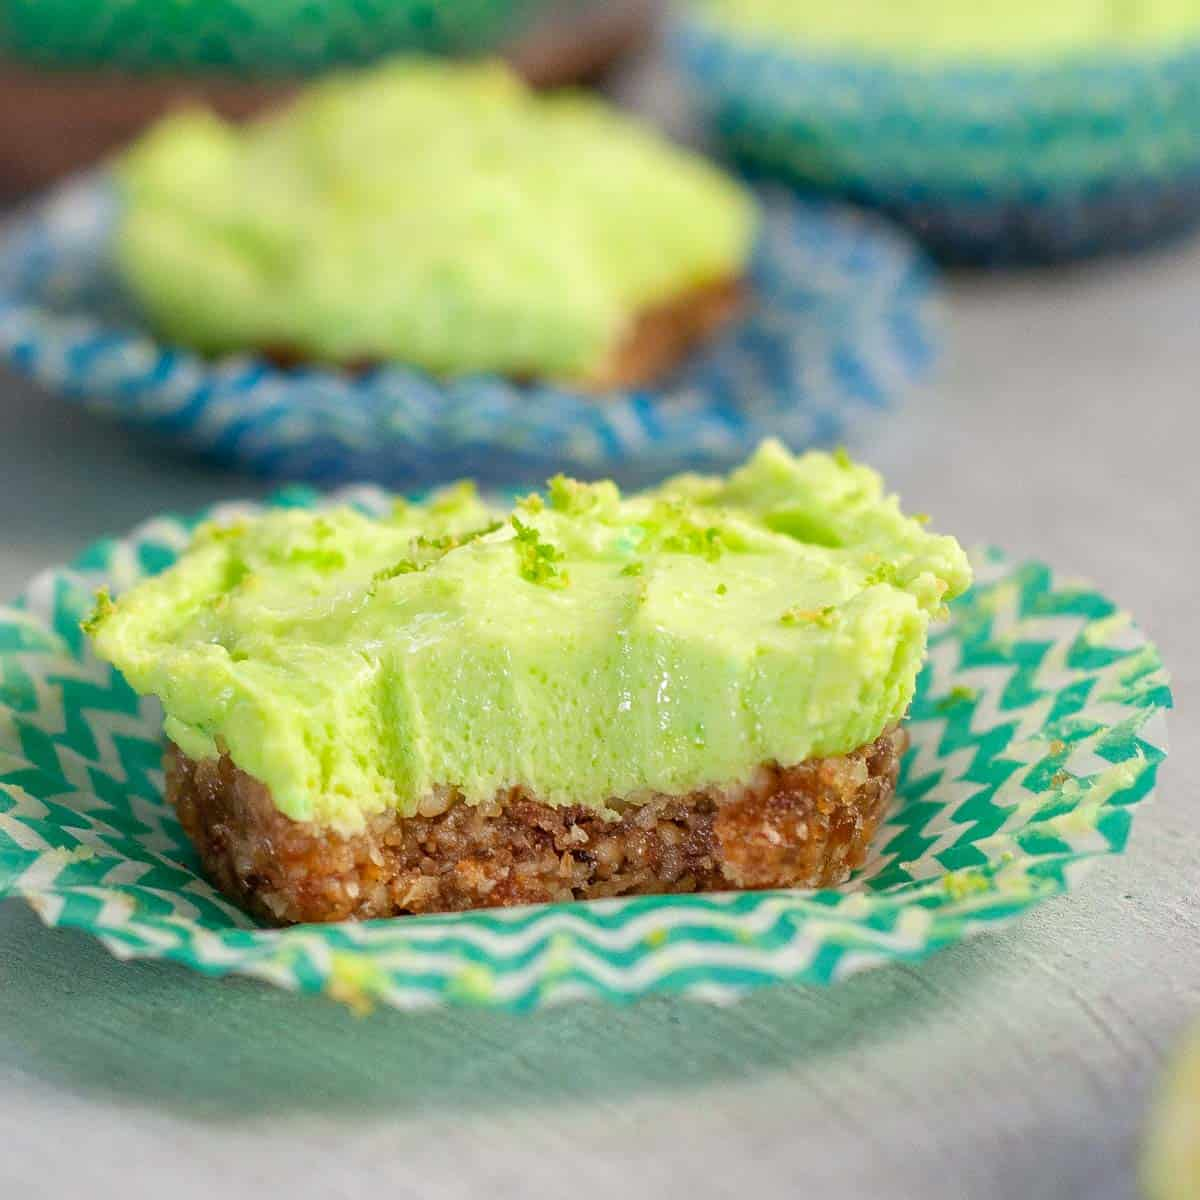 mini lime cheesecake with a bite taken out